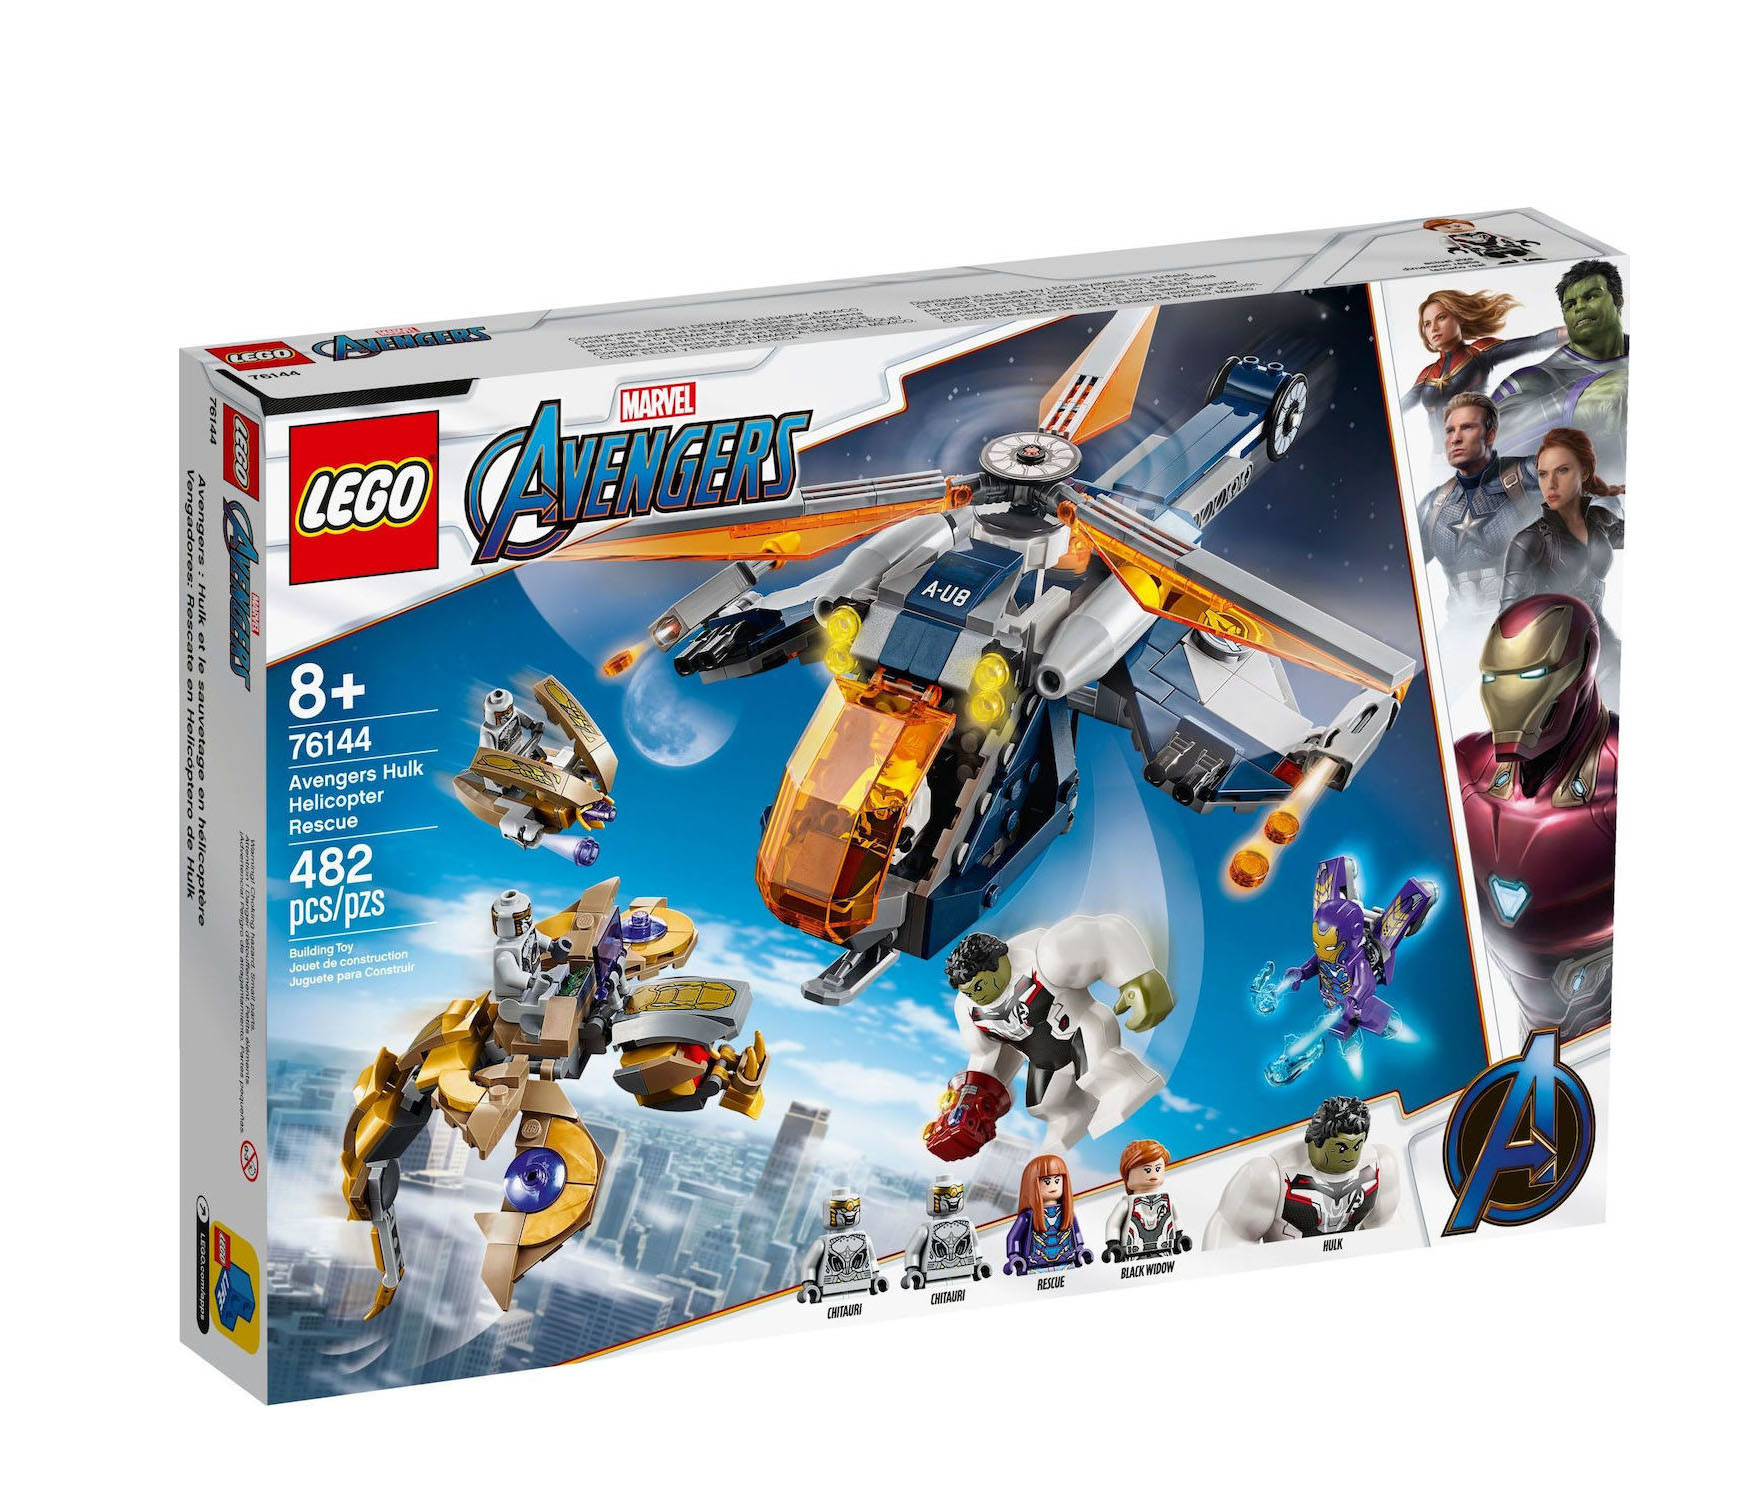 Lego Super Heroes: Avengers Hulk Helicopter Rescue 76144